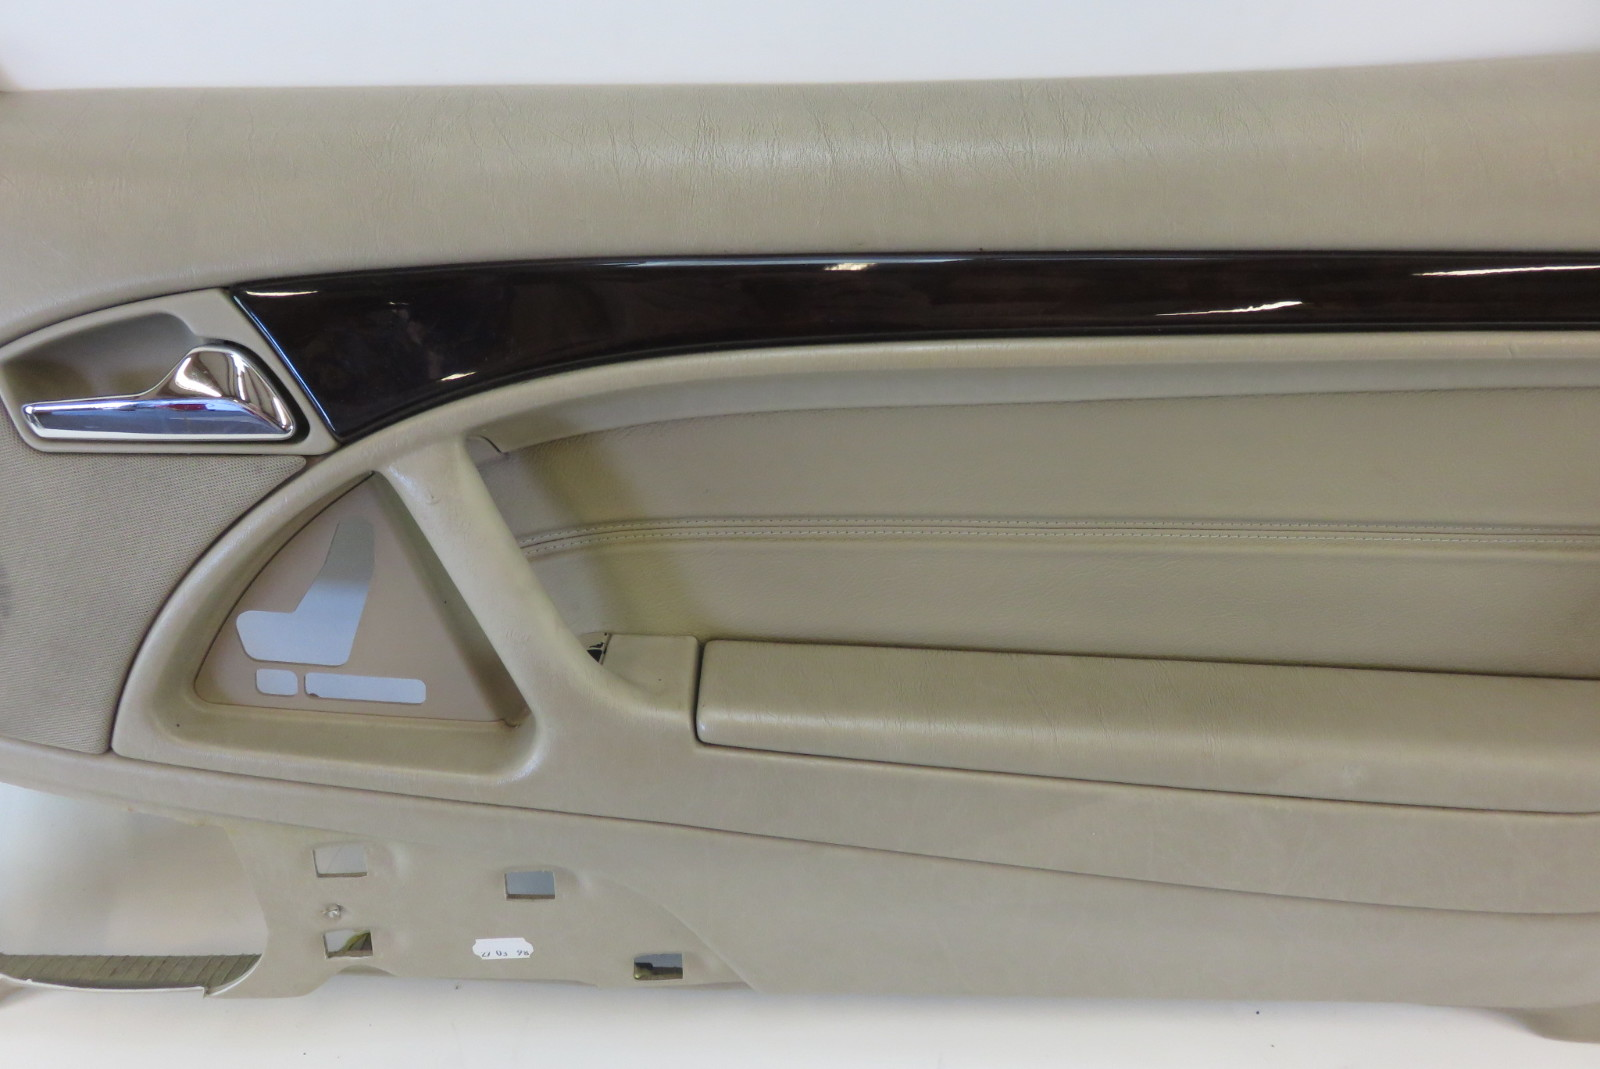 98 Mercedes R129 SL500 SL320 door panel, right, champagne ...